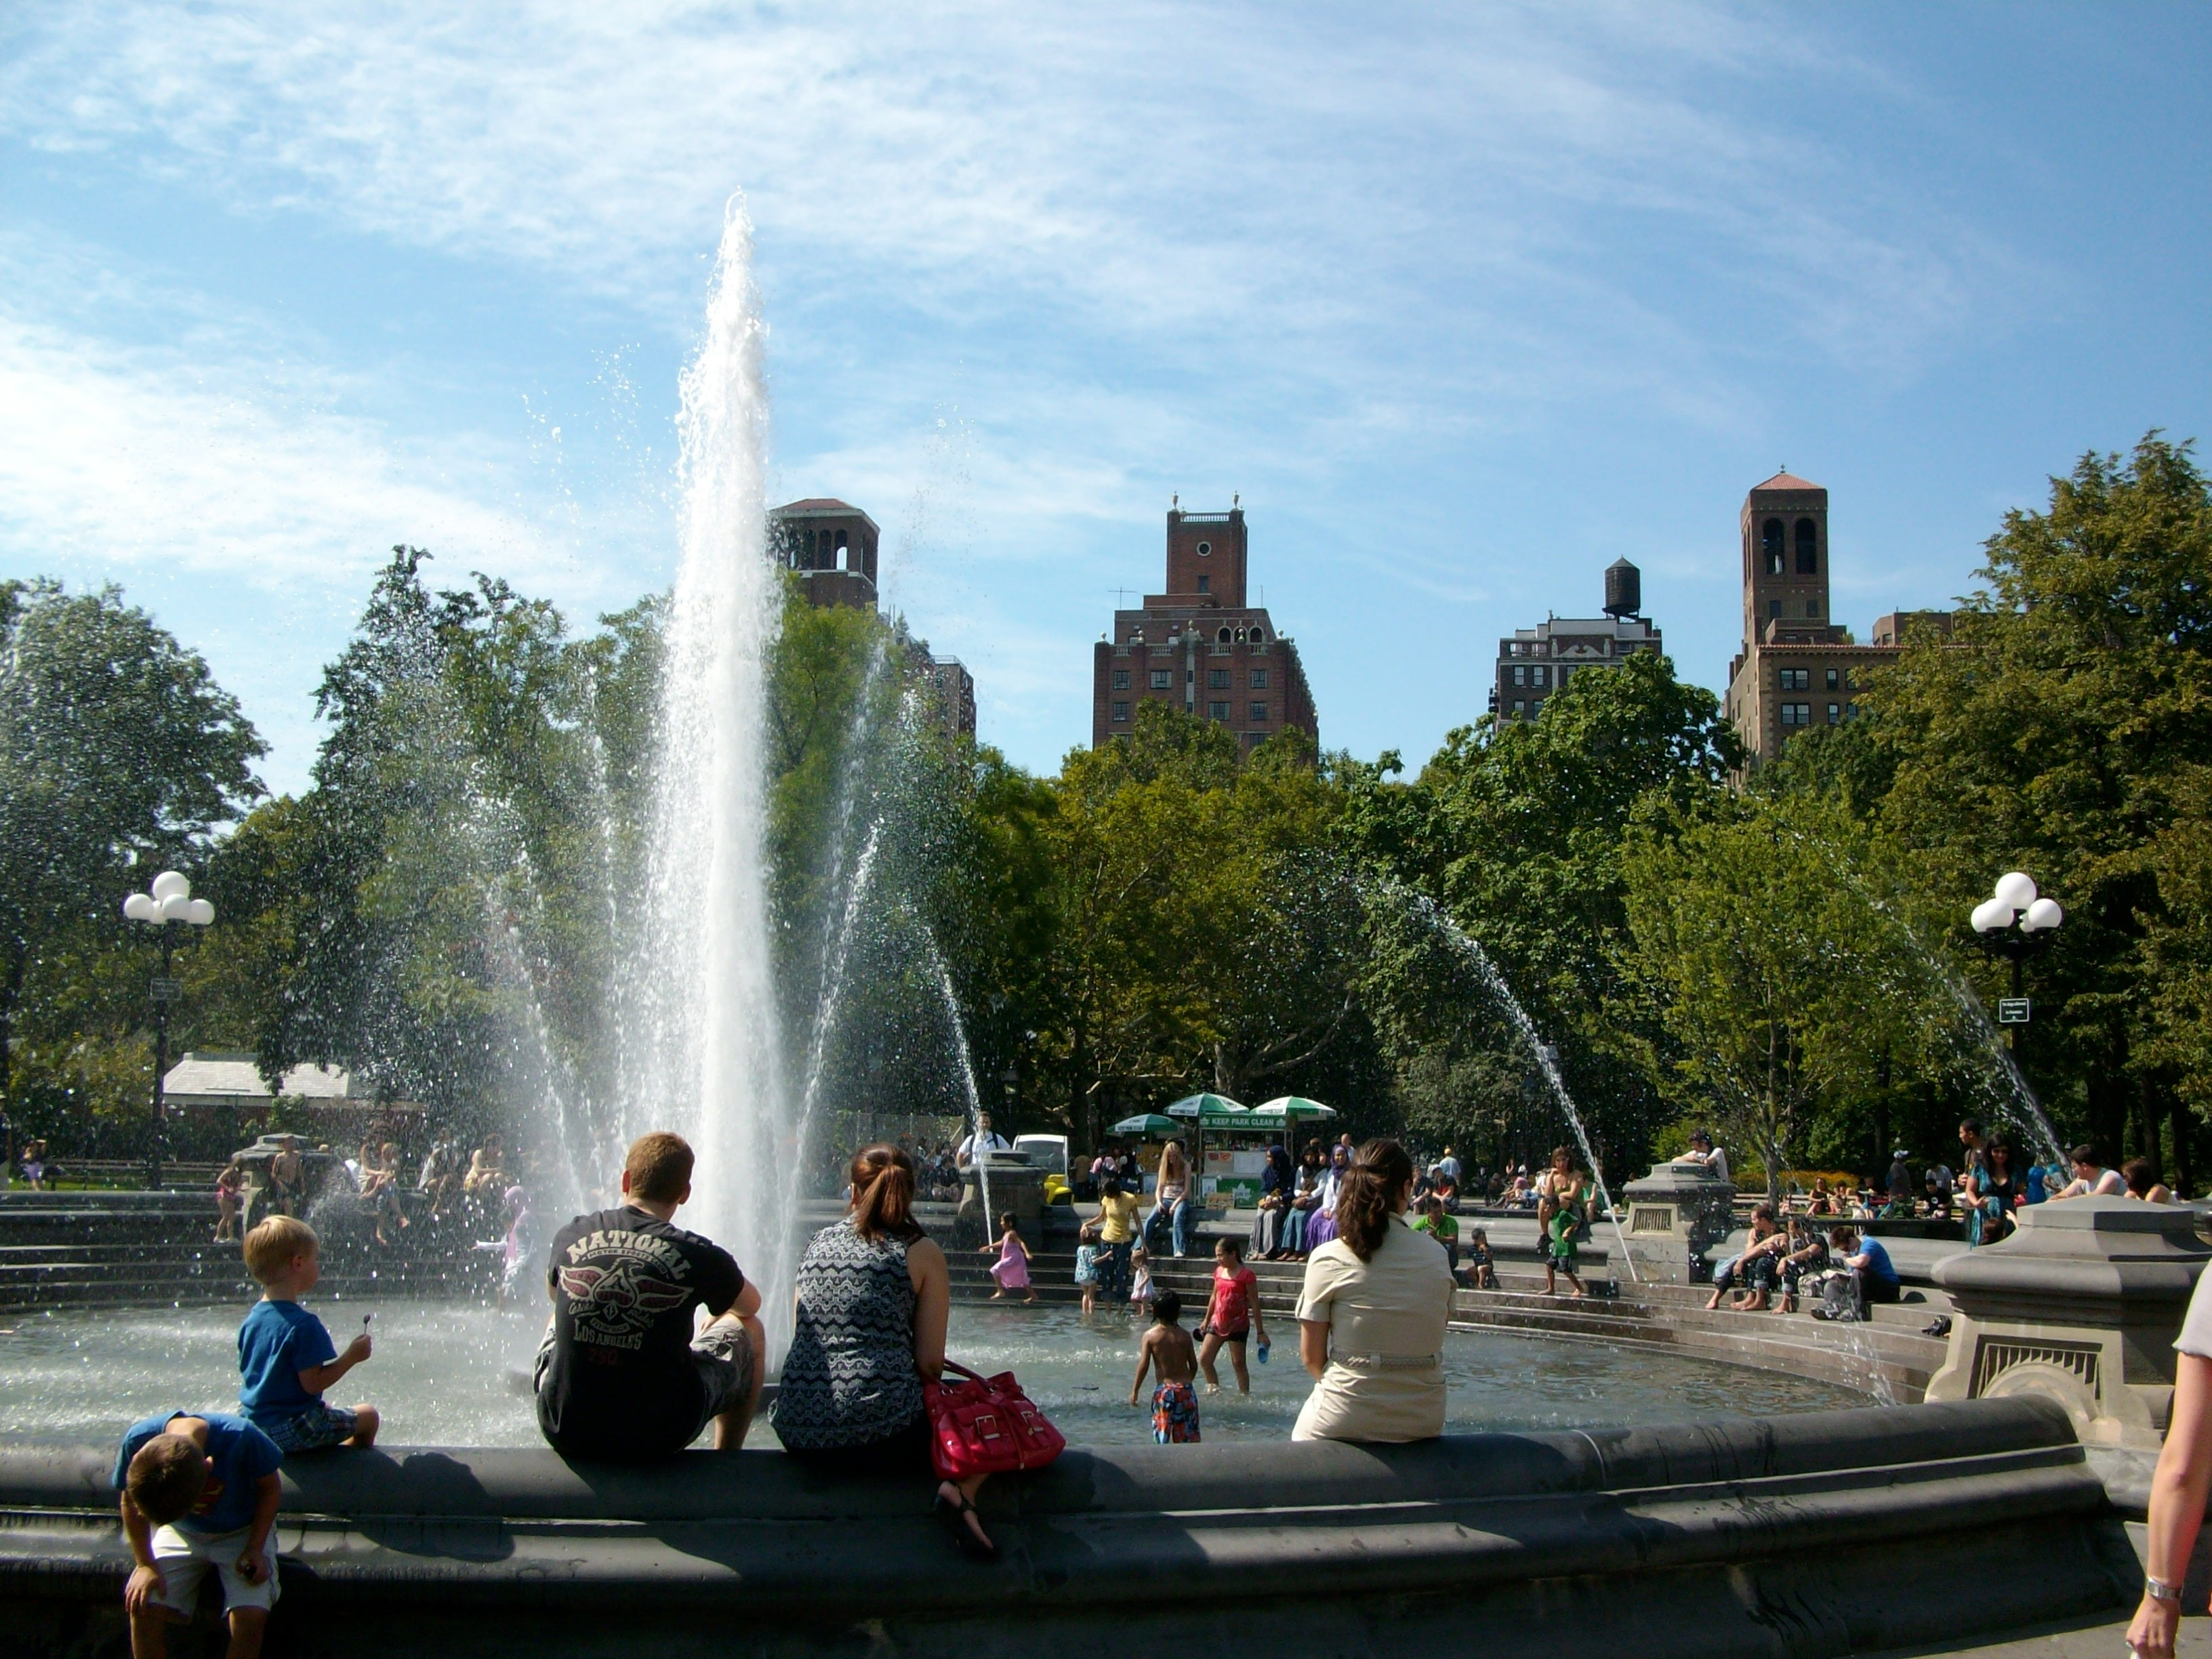 Plaza en Washington Square Park